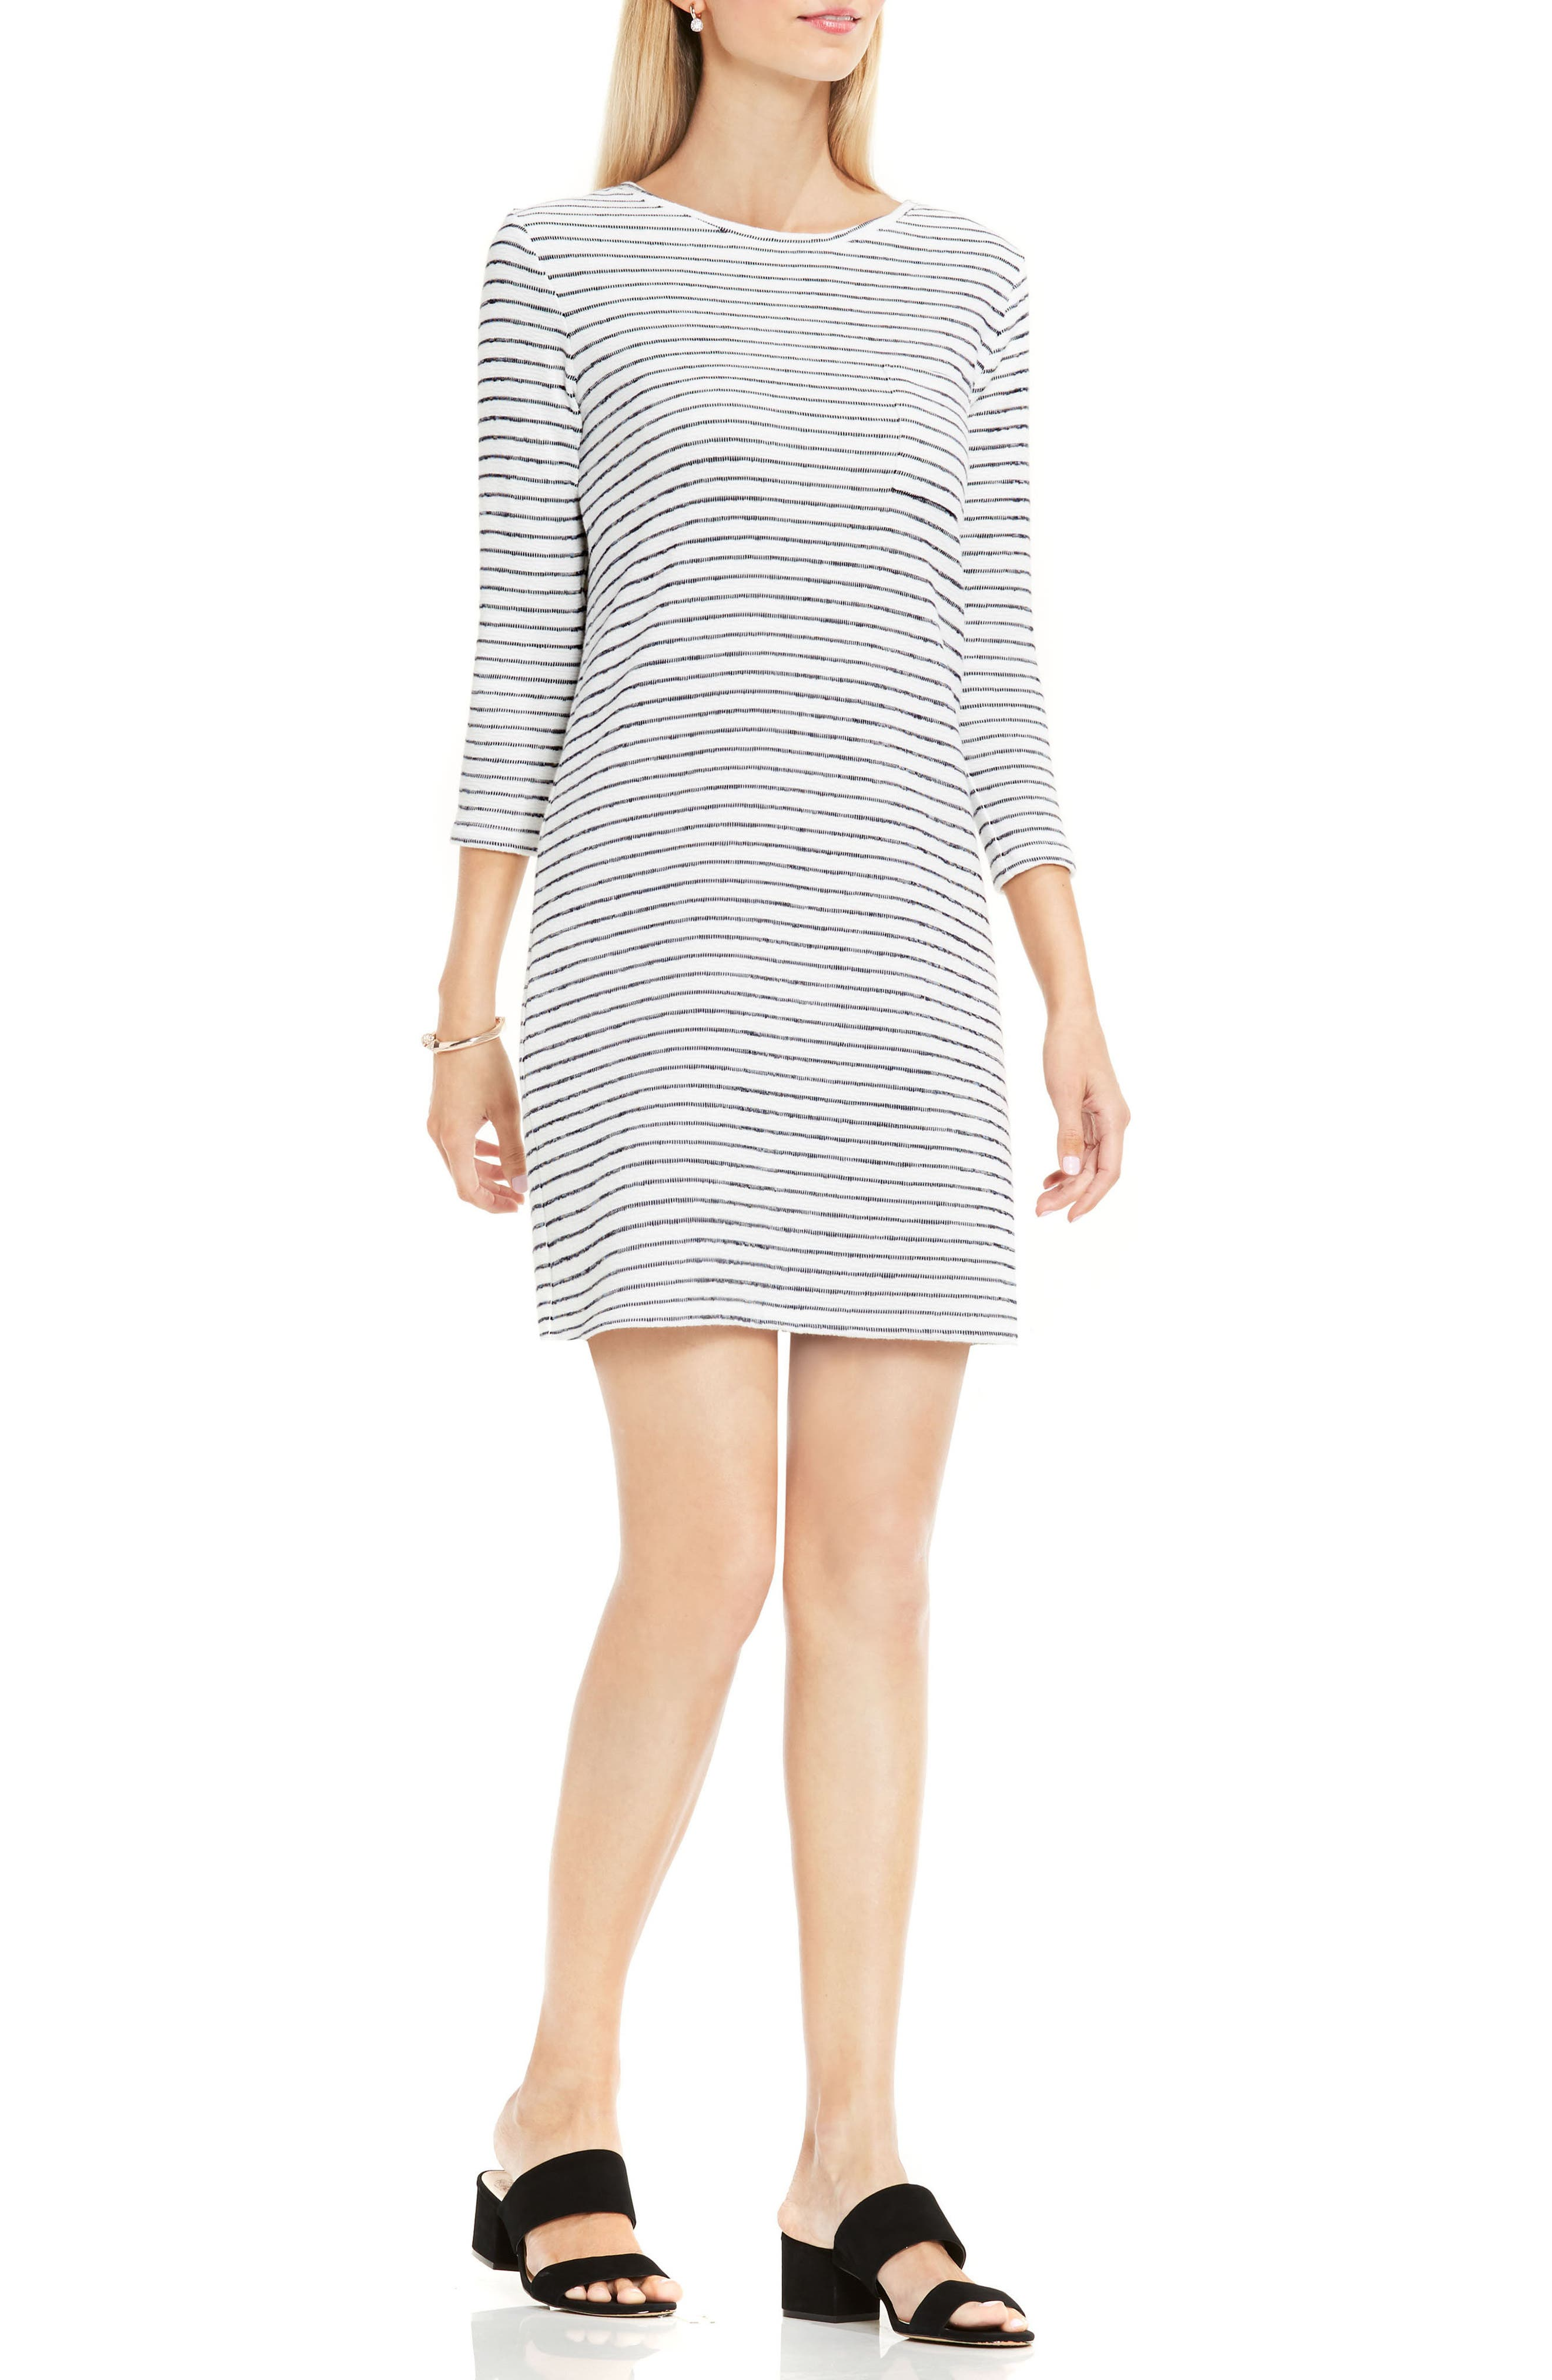 Alternate Image 1 Selected - Two by Vince Camuto Nautical Stripe Button Back Terry Dress